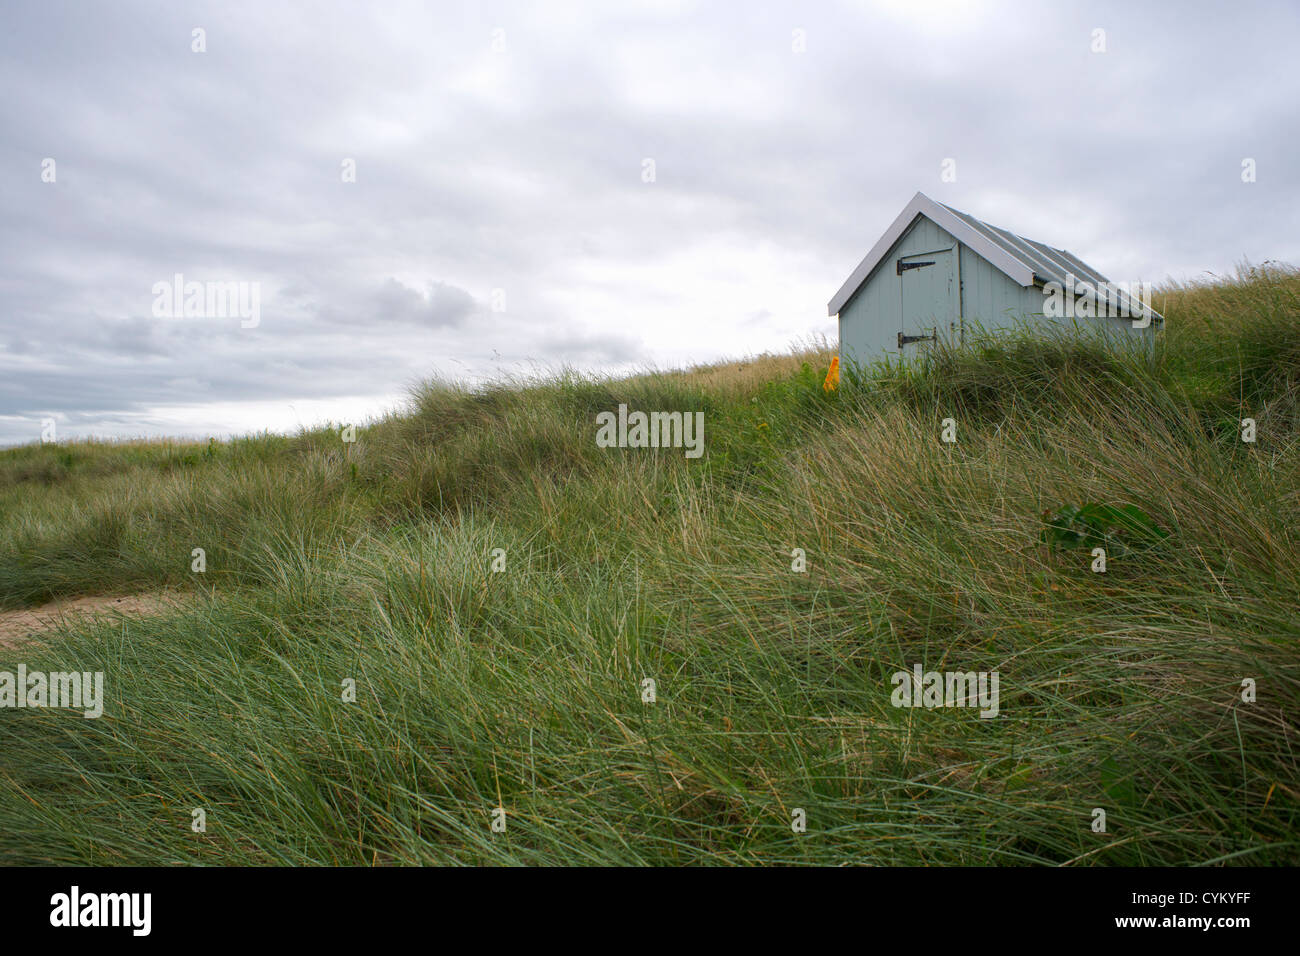 Beach grass blowing in wind - Stock Image